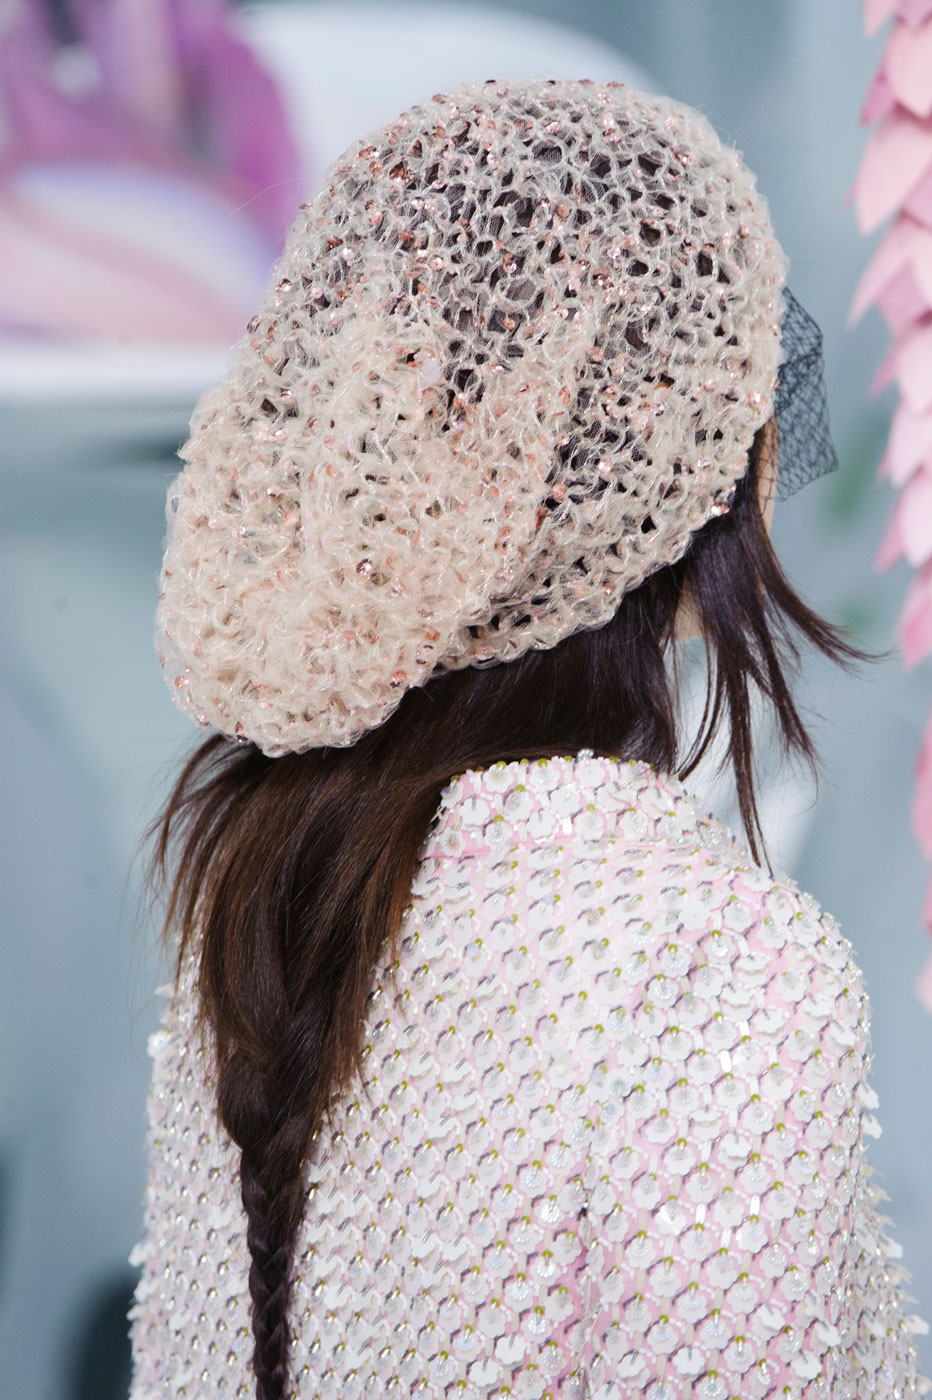 Chanel-fashion-runway-show-close-ups-haute-couture-paris-spring-summer-2015-the-impression-100